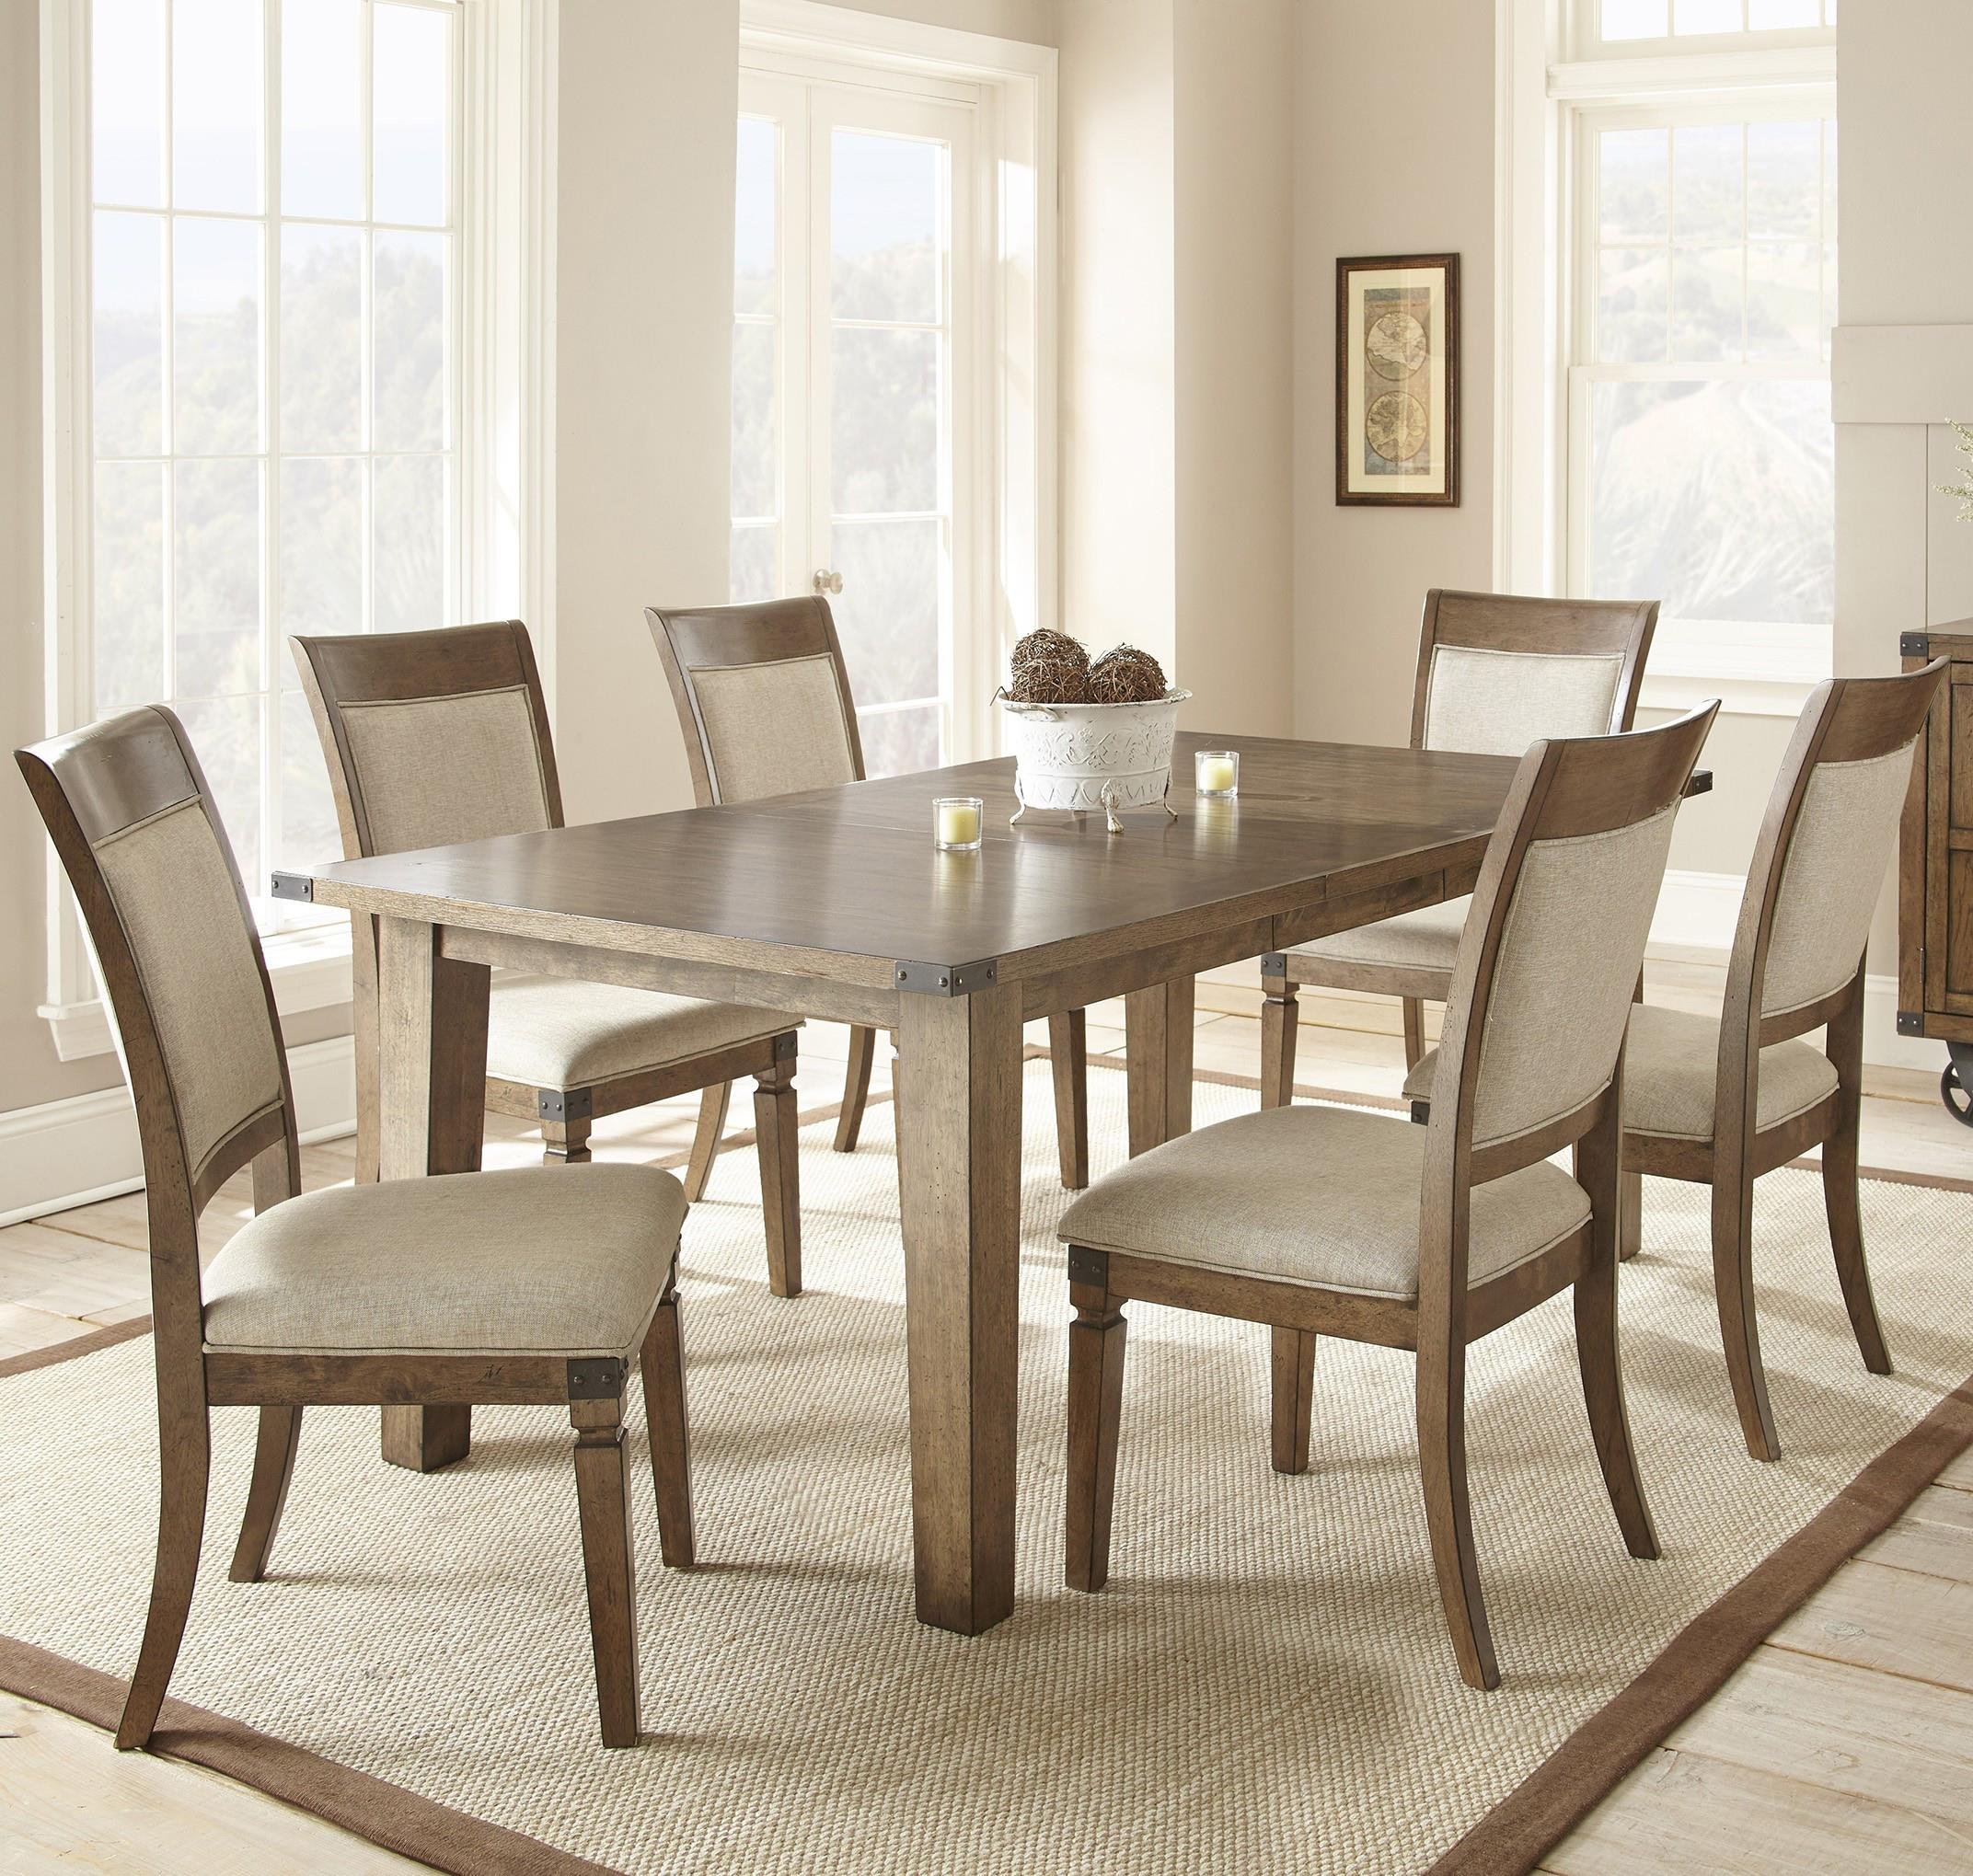 Steve Silver Hailee 7 Piece Dining Set - Item Number: HA500T+6xS